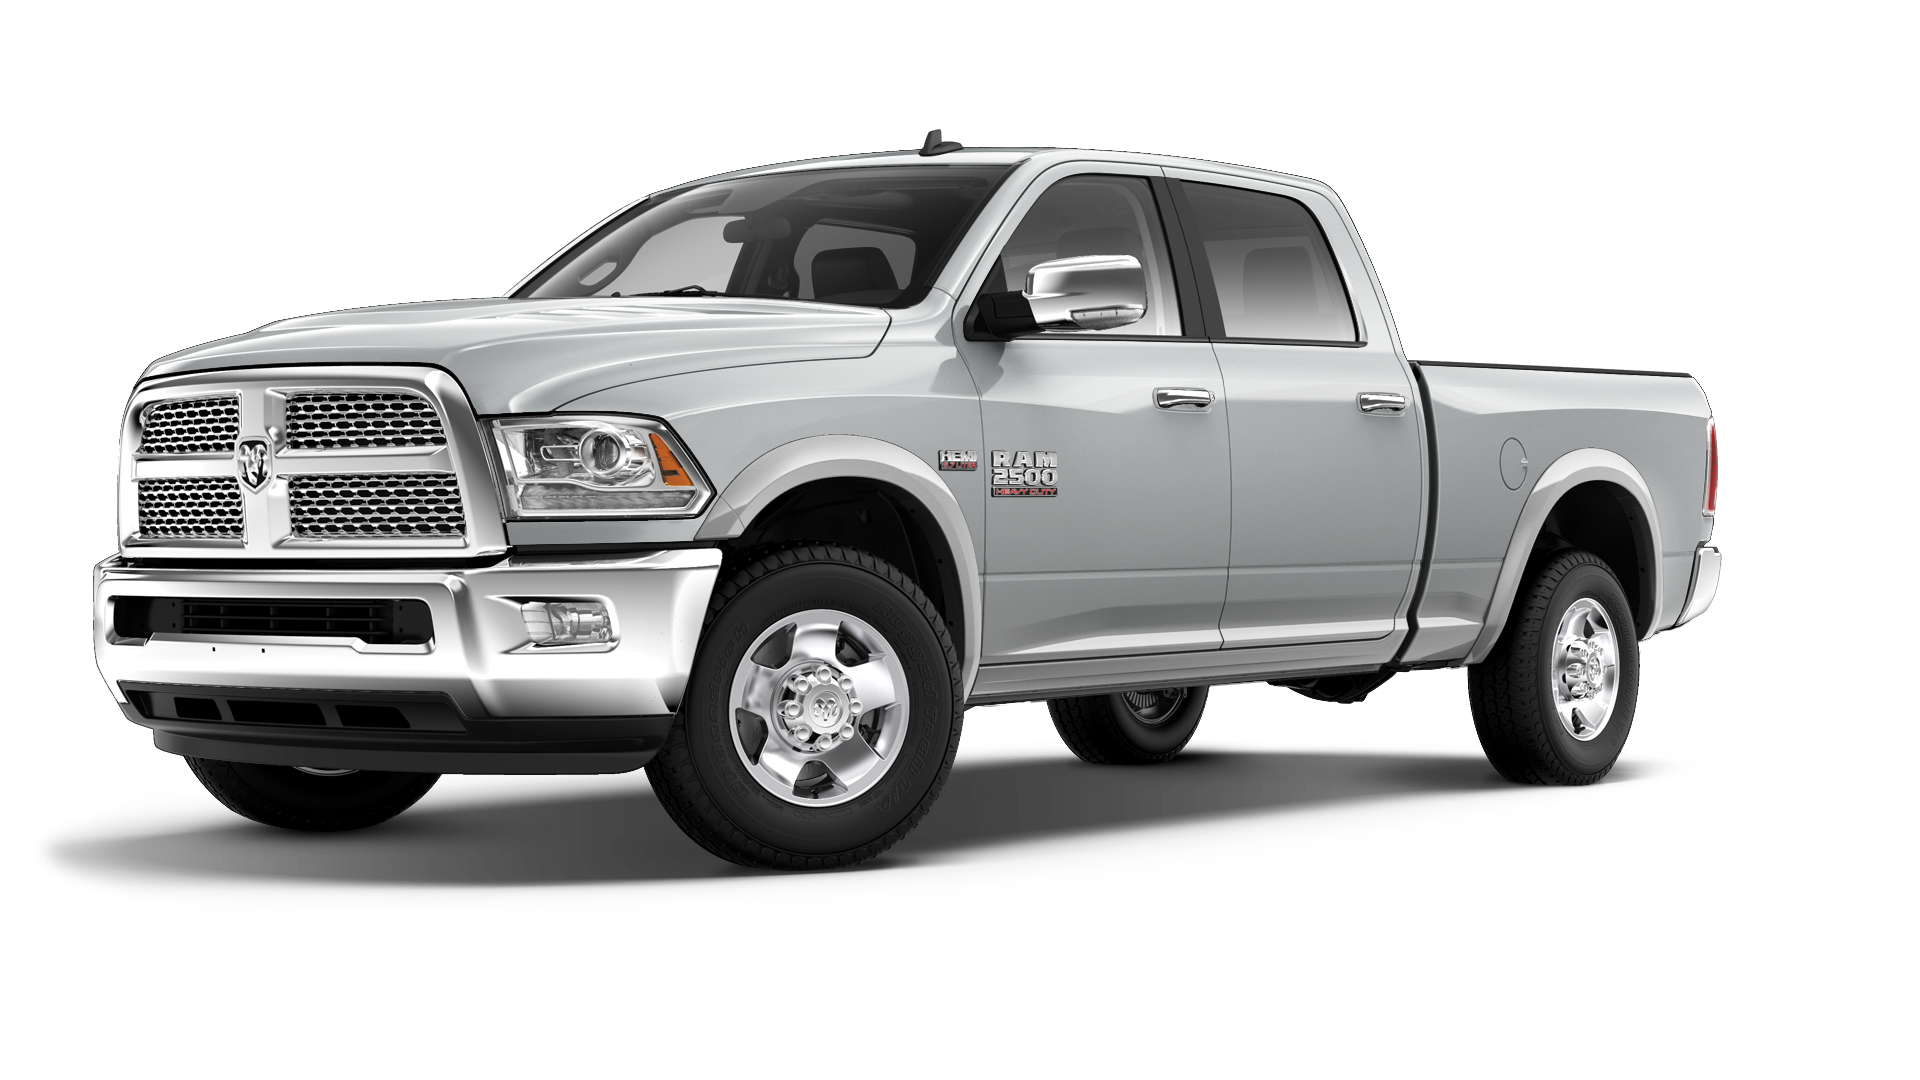 A light gray Ram 2500